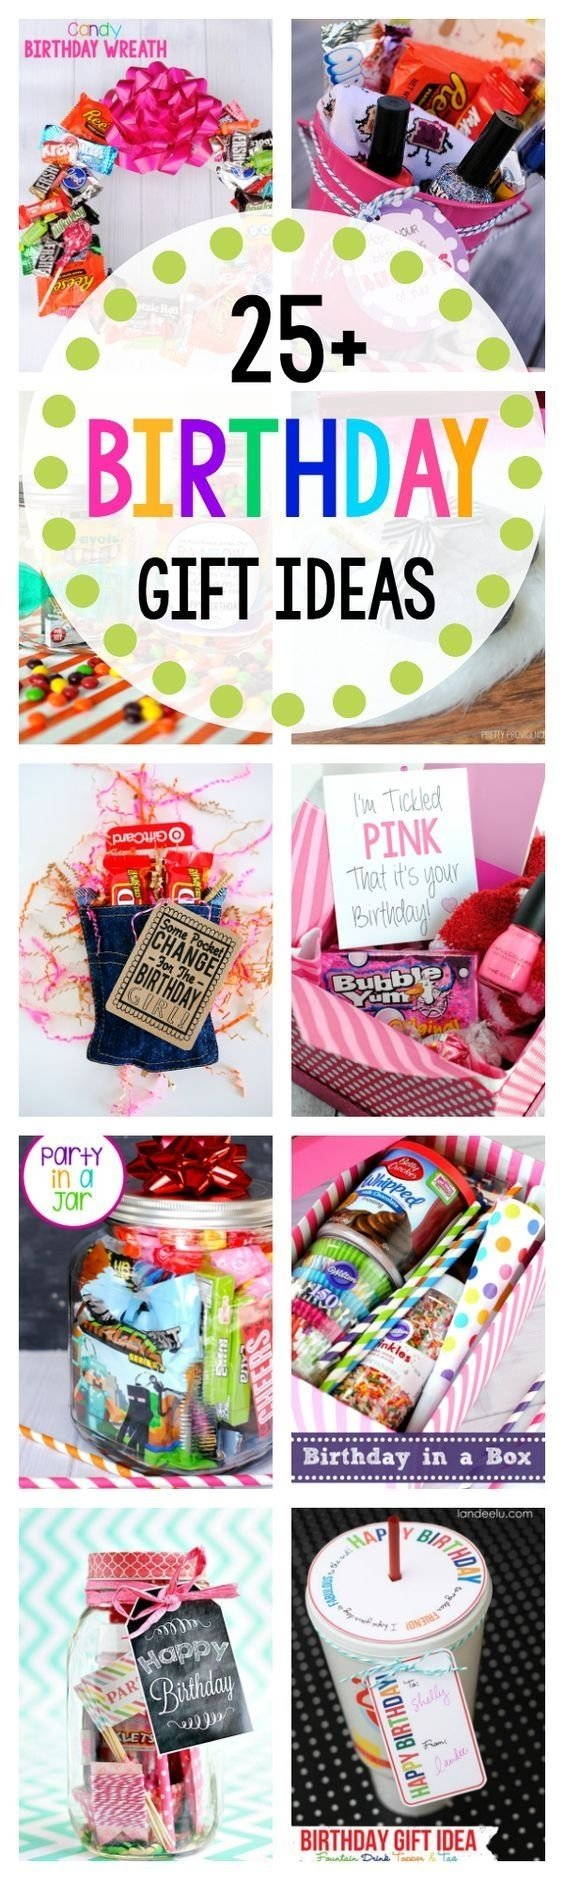 10 Great Birthday Gift Ideas For A Friend 25 Fun Gifts Friends Cadeau